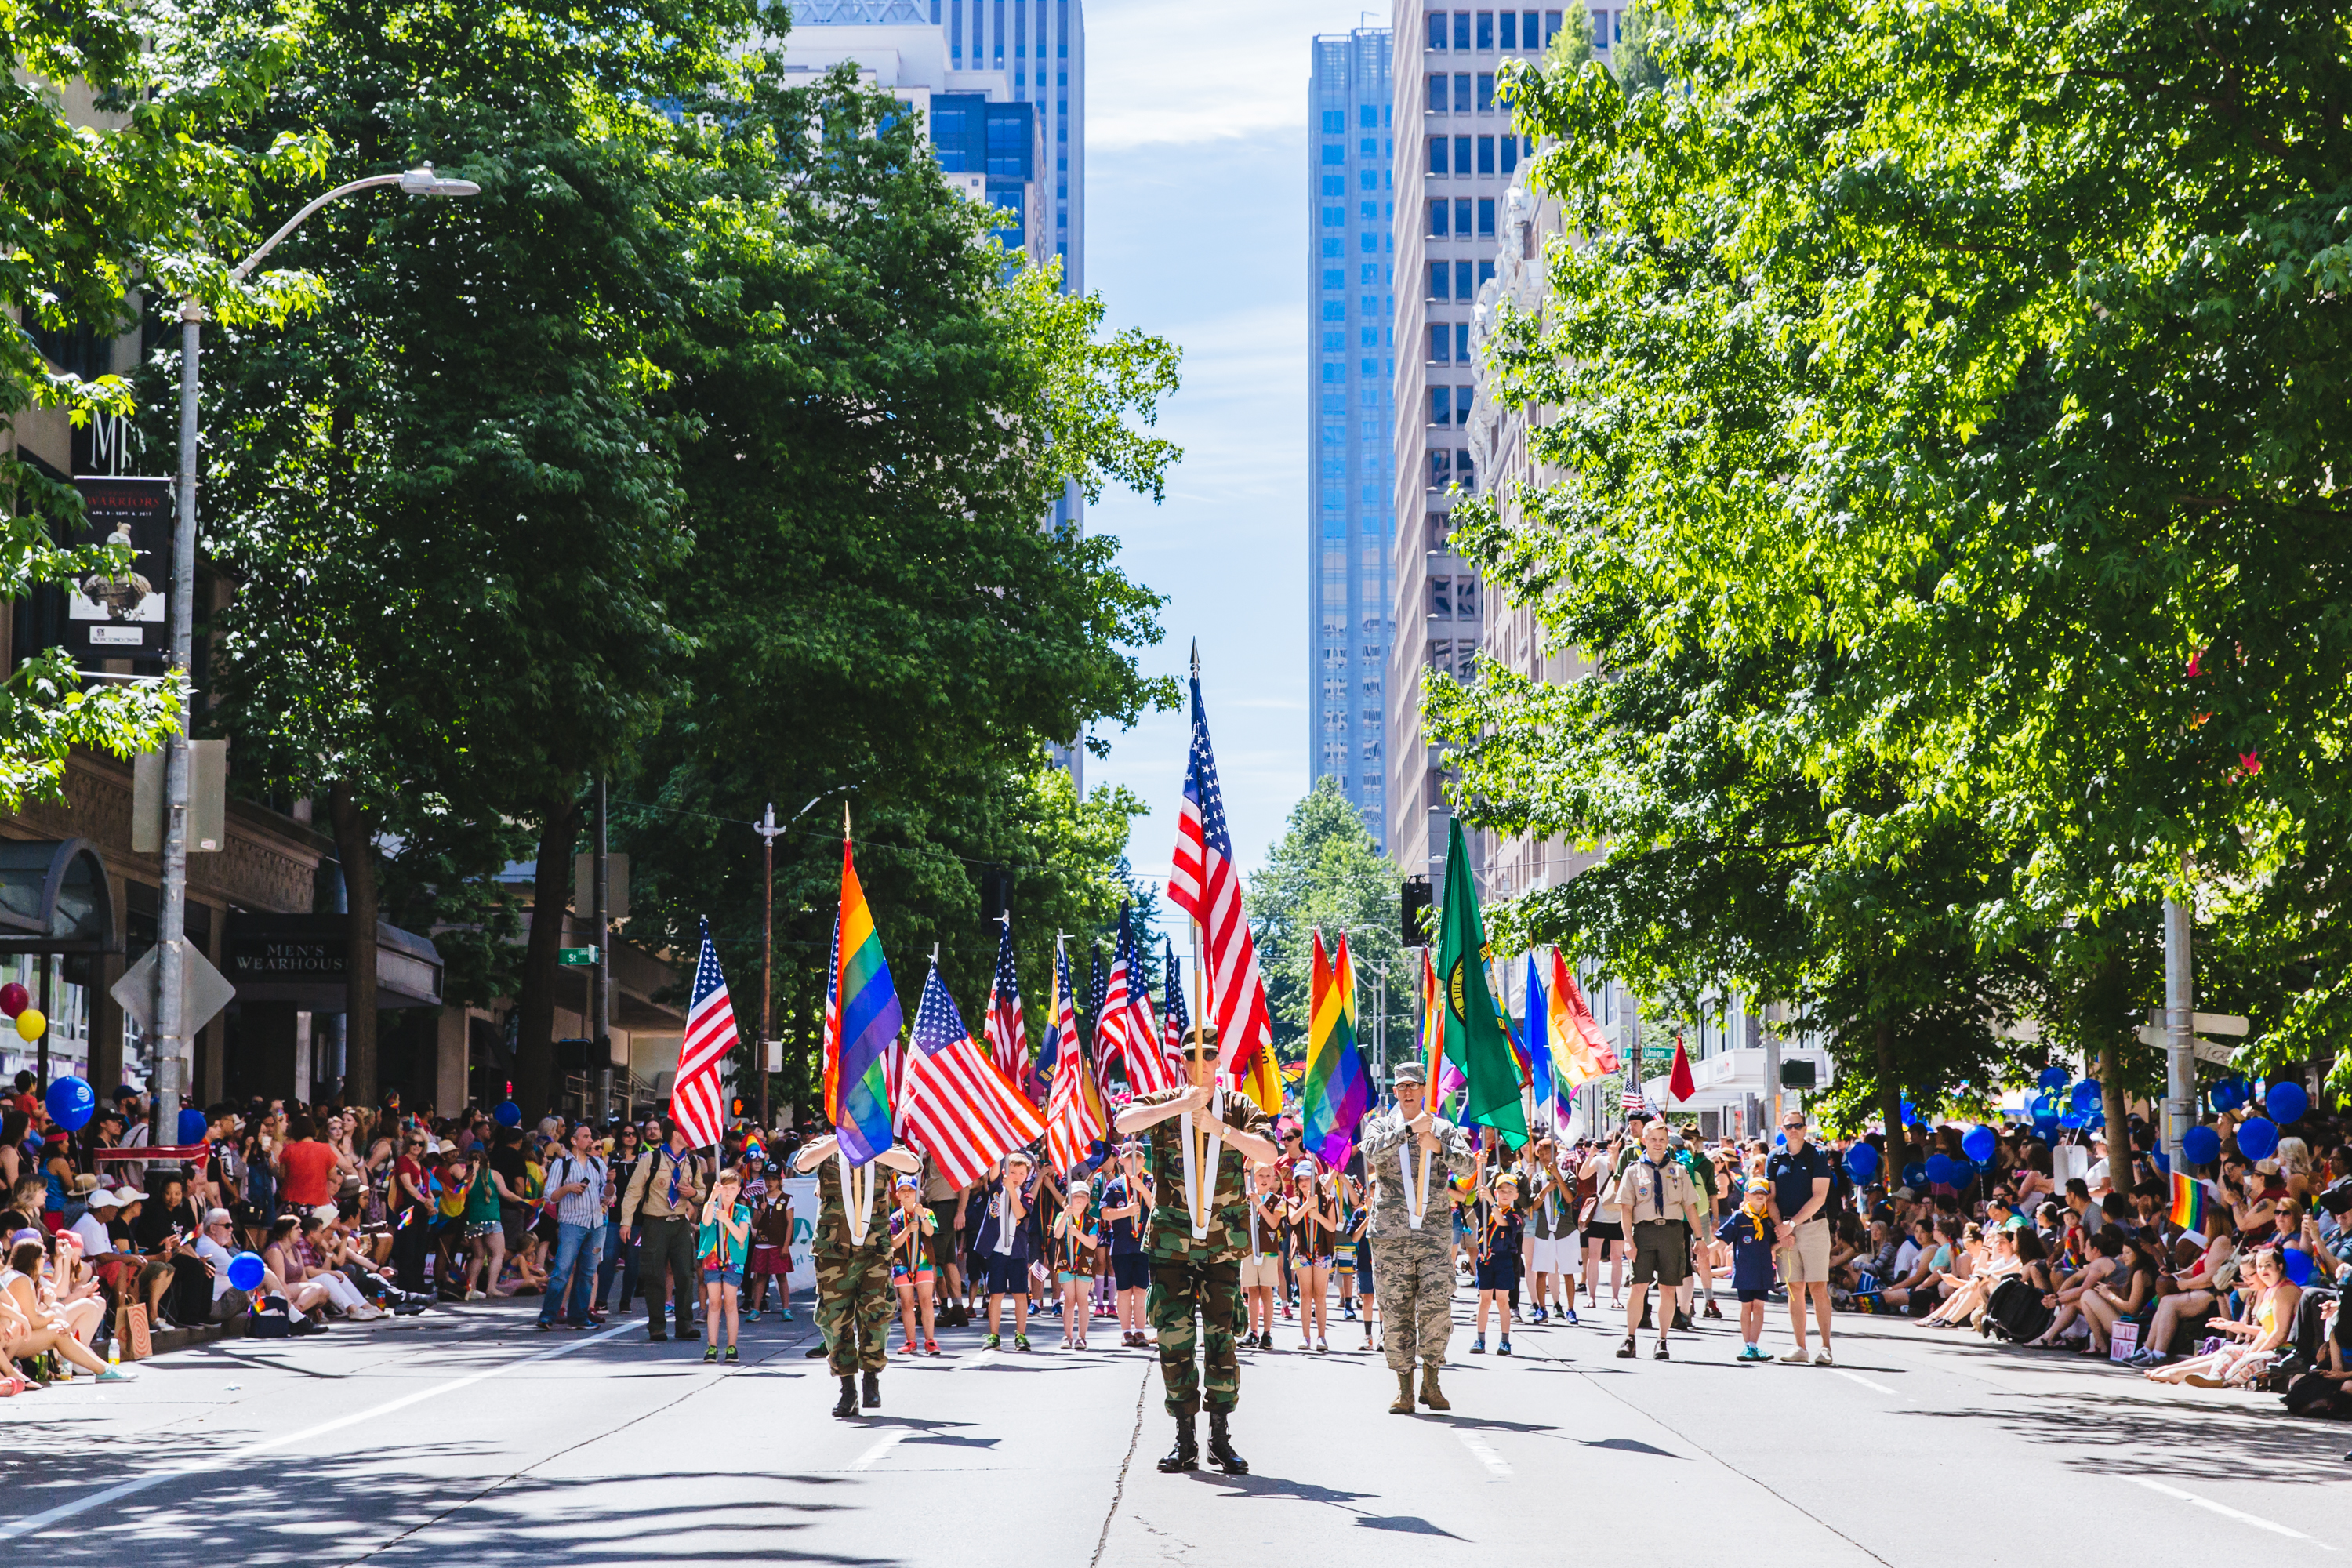 "2017 Seattle Pride Parade. We're celebrating what would have been the weekend of the{&nbsp;}<a  href=""https://www.seattlepride.org/"" target=""_blank"" title=""https://www.seattlepride.org/"">Seattle Pride Parade</a>{&nbsp;}with a look back at parades past and remembering all the joy and love they have brought our city! If you're missing it as much as we are - join in virtually!{&nbsp;}<a  href=""https://www.seattlepride.org/events/together-for-pride-seattles-virtual-pride"" target=""_blank"" title=""https://www.seattlepride.org/events/together-for-pride-seattles-virtual-pride"">Together For Pride - Seattle's Virtual Pride</a>{&nbsp;}event is being held Friday to Sunday, June 26-28, with speakers, performances and activities. See you next year! (Image: Sunita Martini / Seattle Refined)"